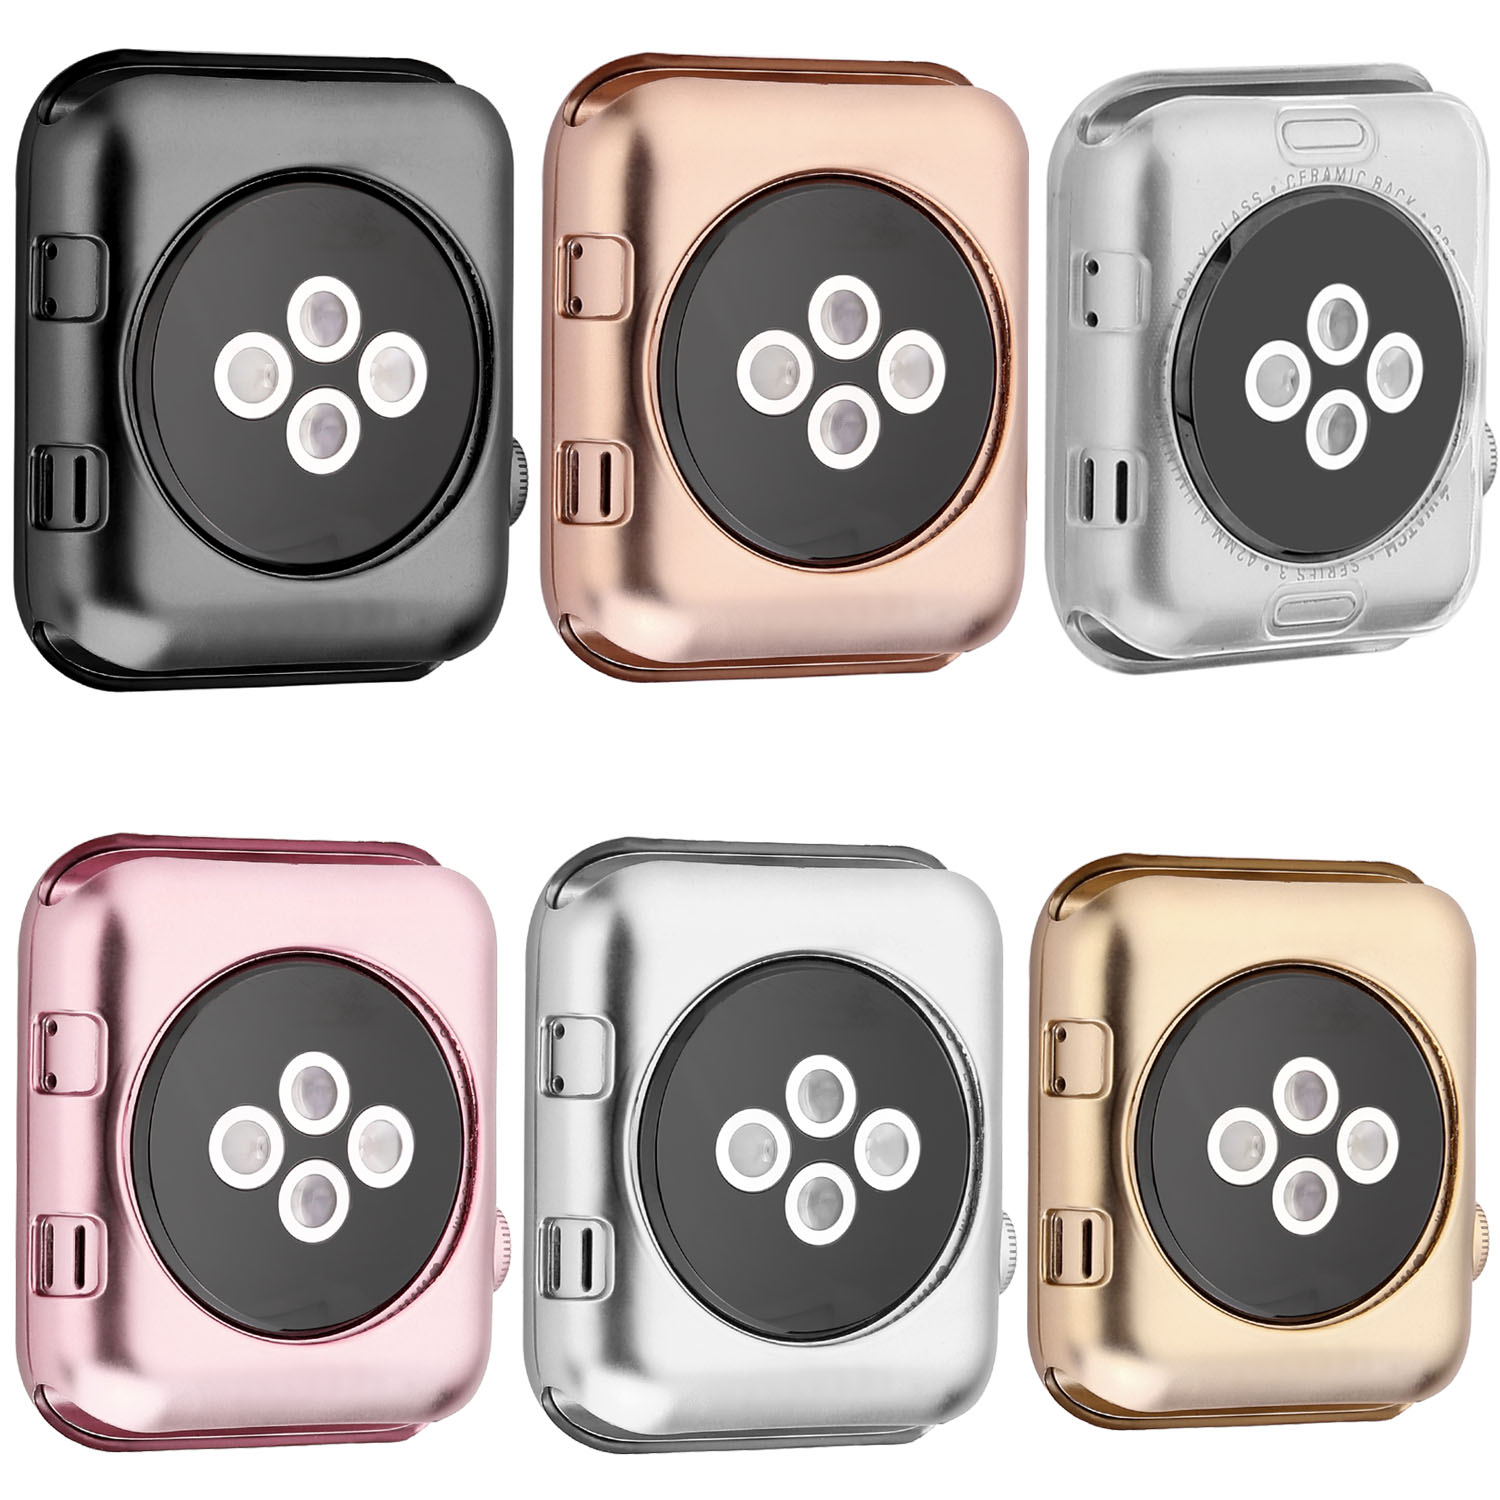 New 6 Colors Gold Plating Soft Silicone Case for Apple Watch Series 1 2 3 Cover Full Body Protection Watch Cover Band 42mm 38mm series 1 2 3 soft silicone case for apple watch cover 38mm 42mm fashion plated tpu protective cover for iwatch